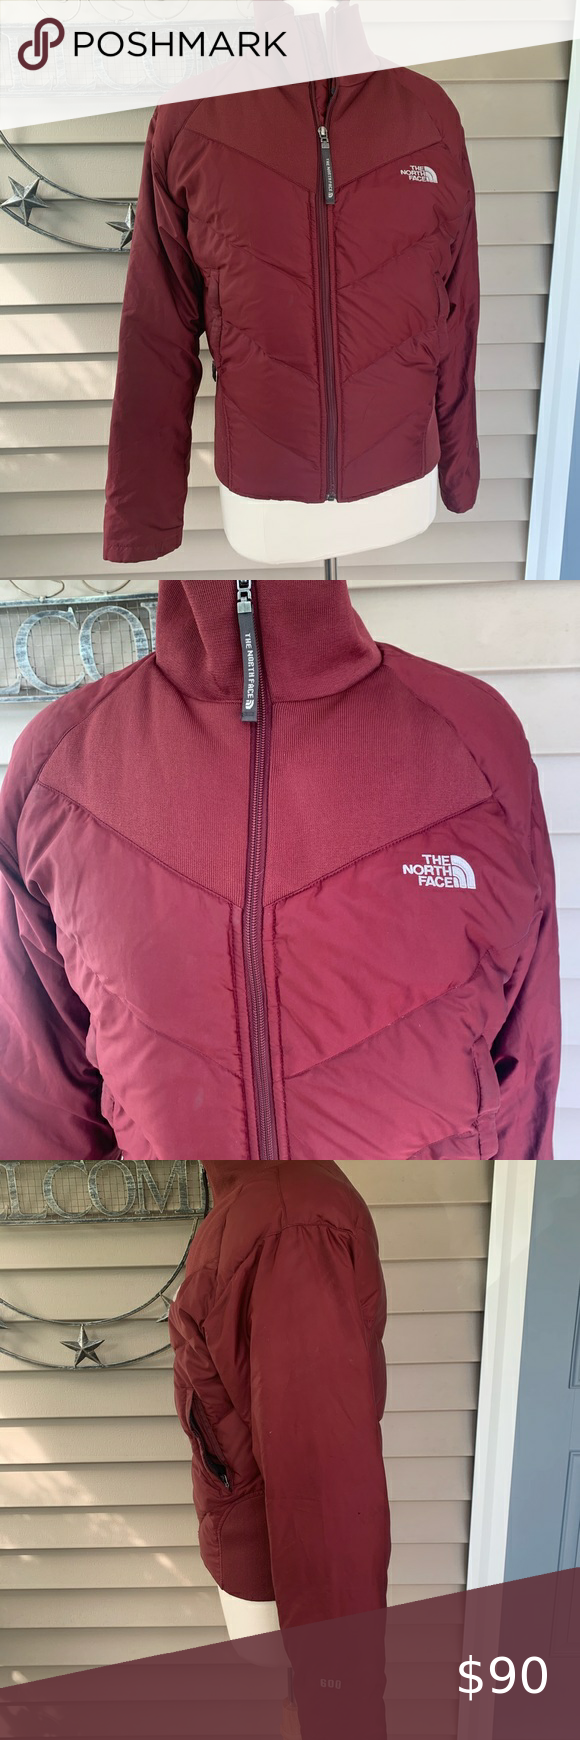 North Face Ski Puffer Jacket Great Used Condition Maroon In Color Minor Wear Marks One Teeny Tiny Pinhole Womens Puffer Vest North Face Puffer Jacket Fashion [ 1740 x 580 Pixel ]